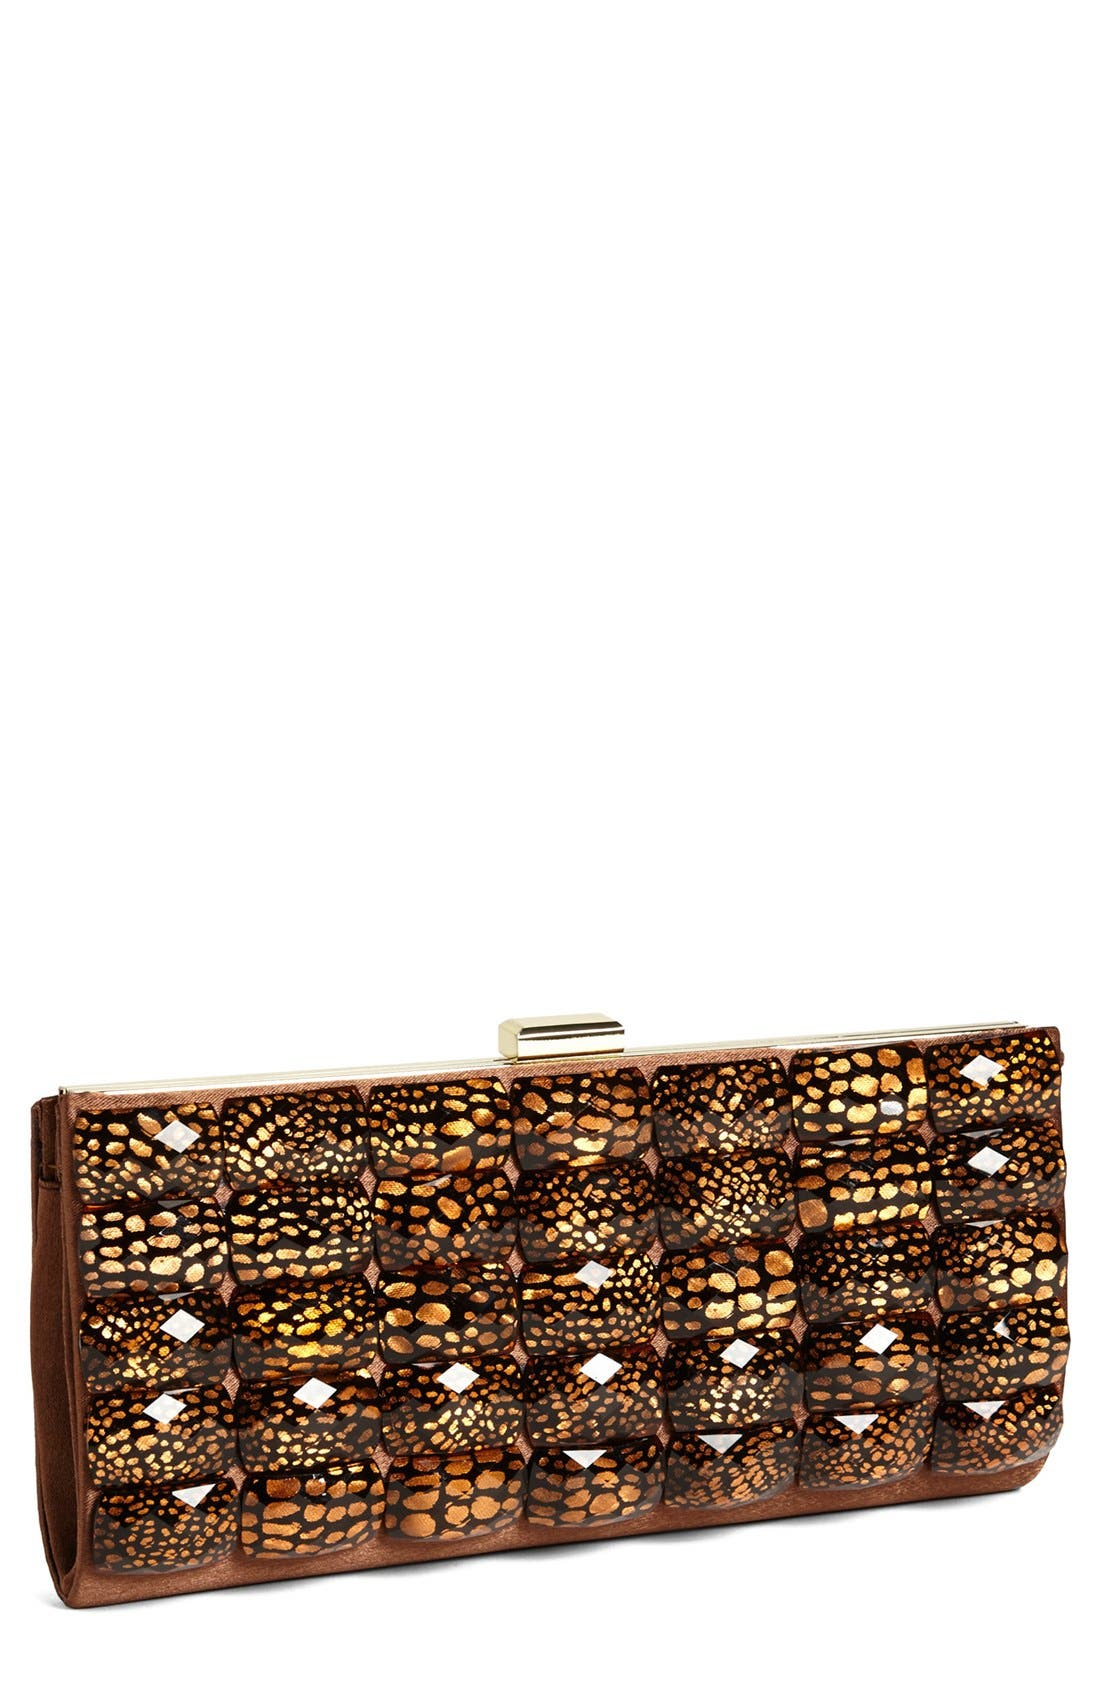 Alternate Image 1 Selected - Sondra Roberts 'Leopard Stone - Slim' Clutch